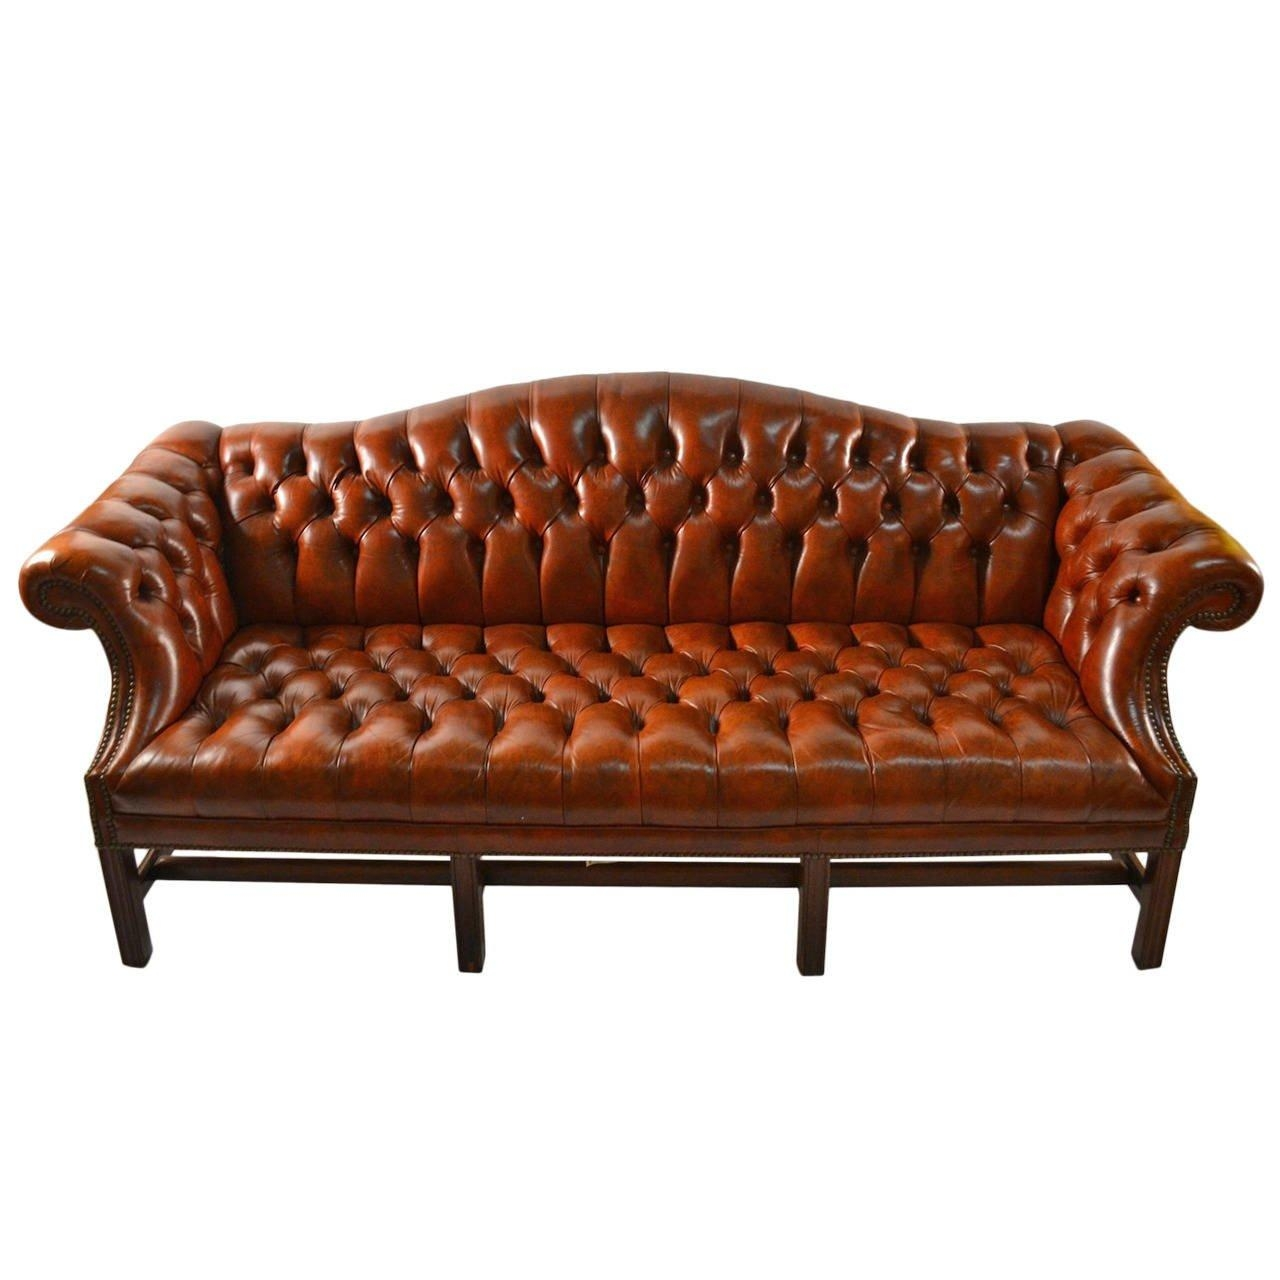 Leather Camel Back Sofa At 1Stdibs For Camelback Leather Sofas (View 7 of 20)